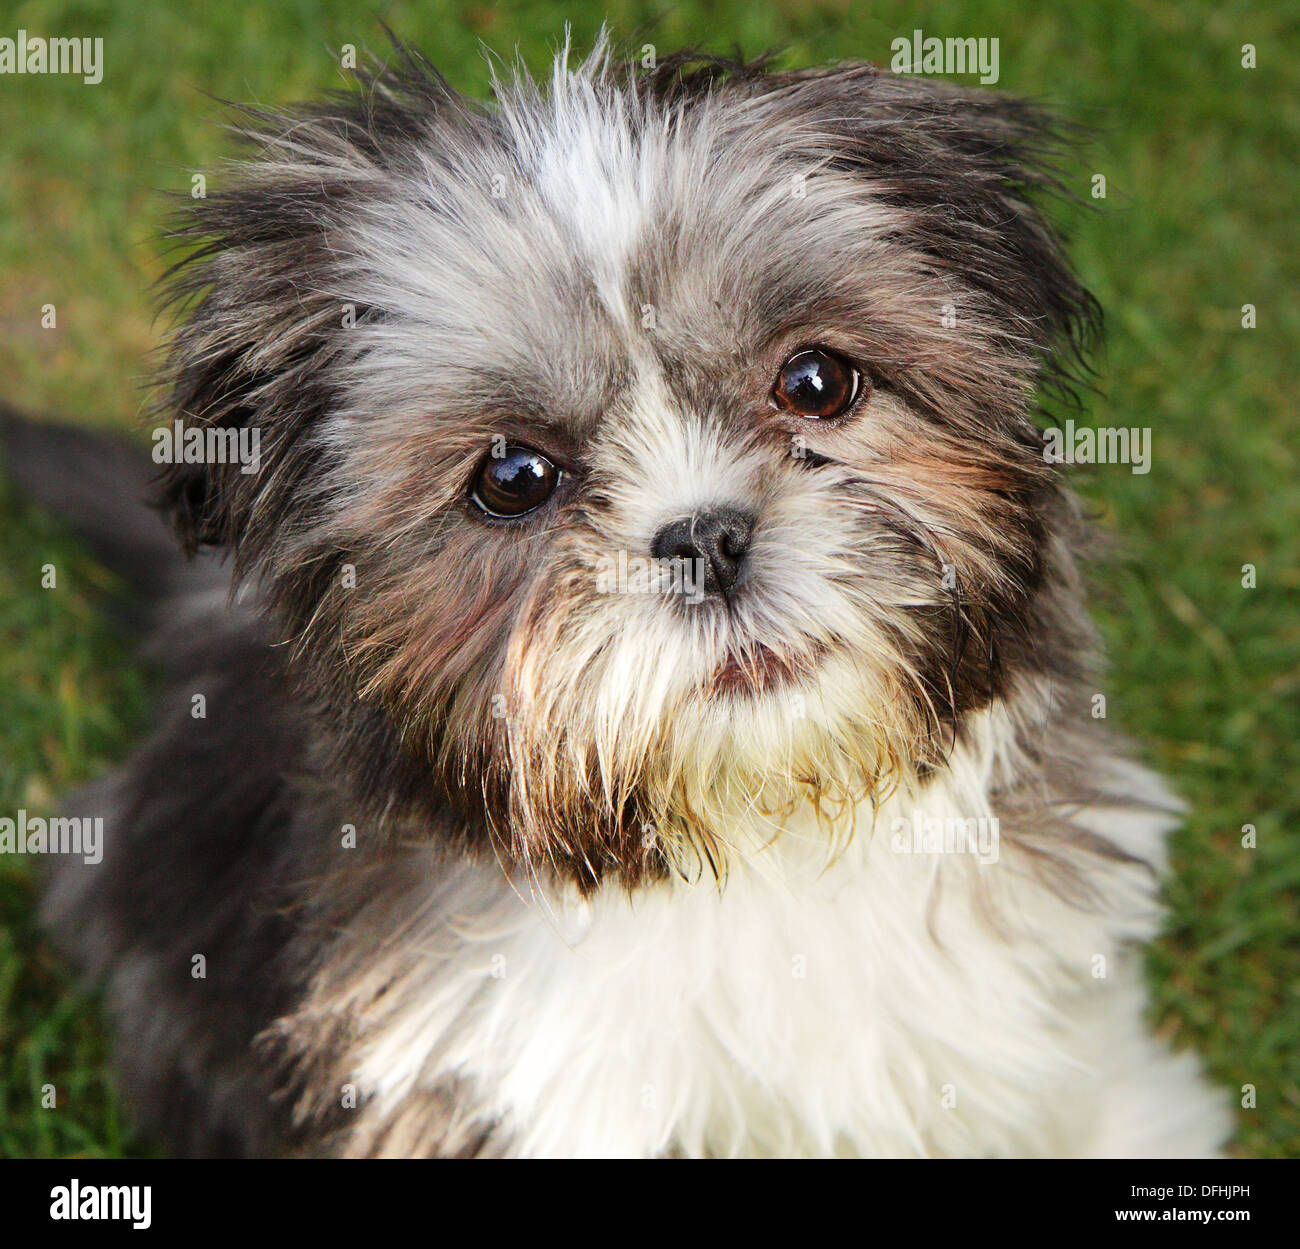 Close Up Of A Cute Miniature Shih Tzu Puppy Stock Photo 61238873